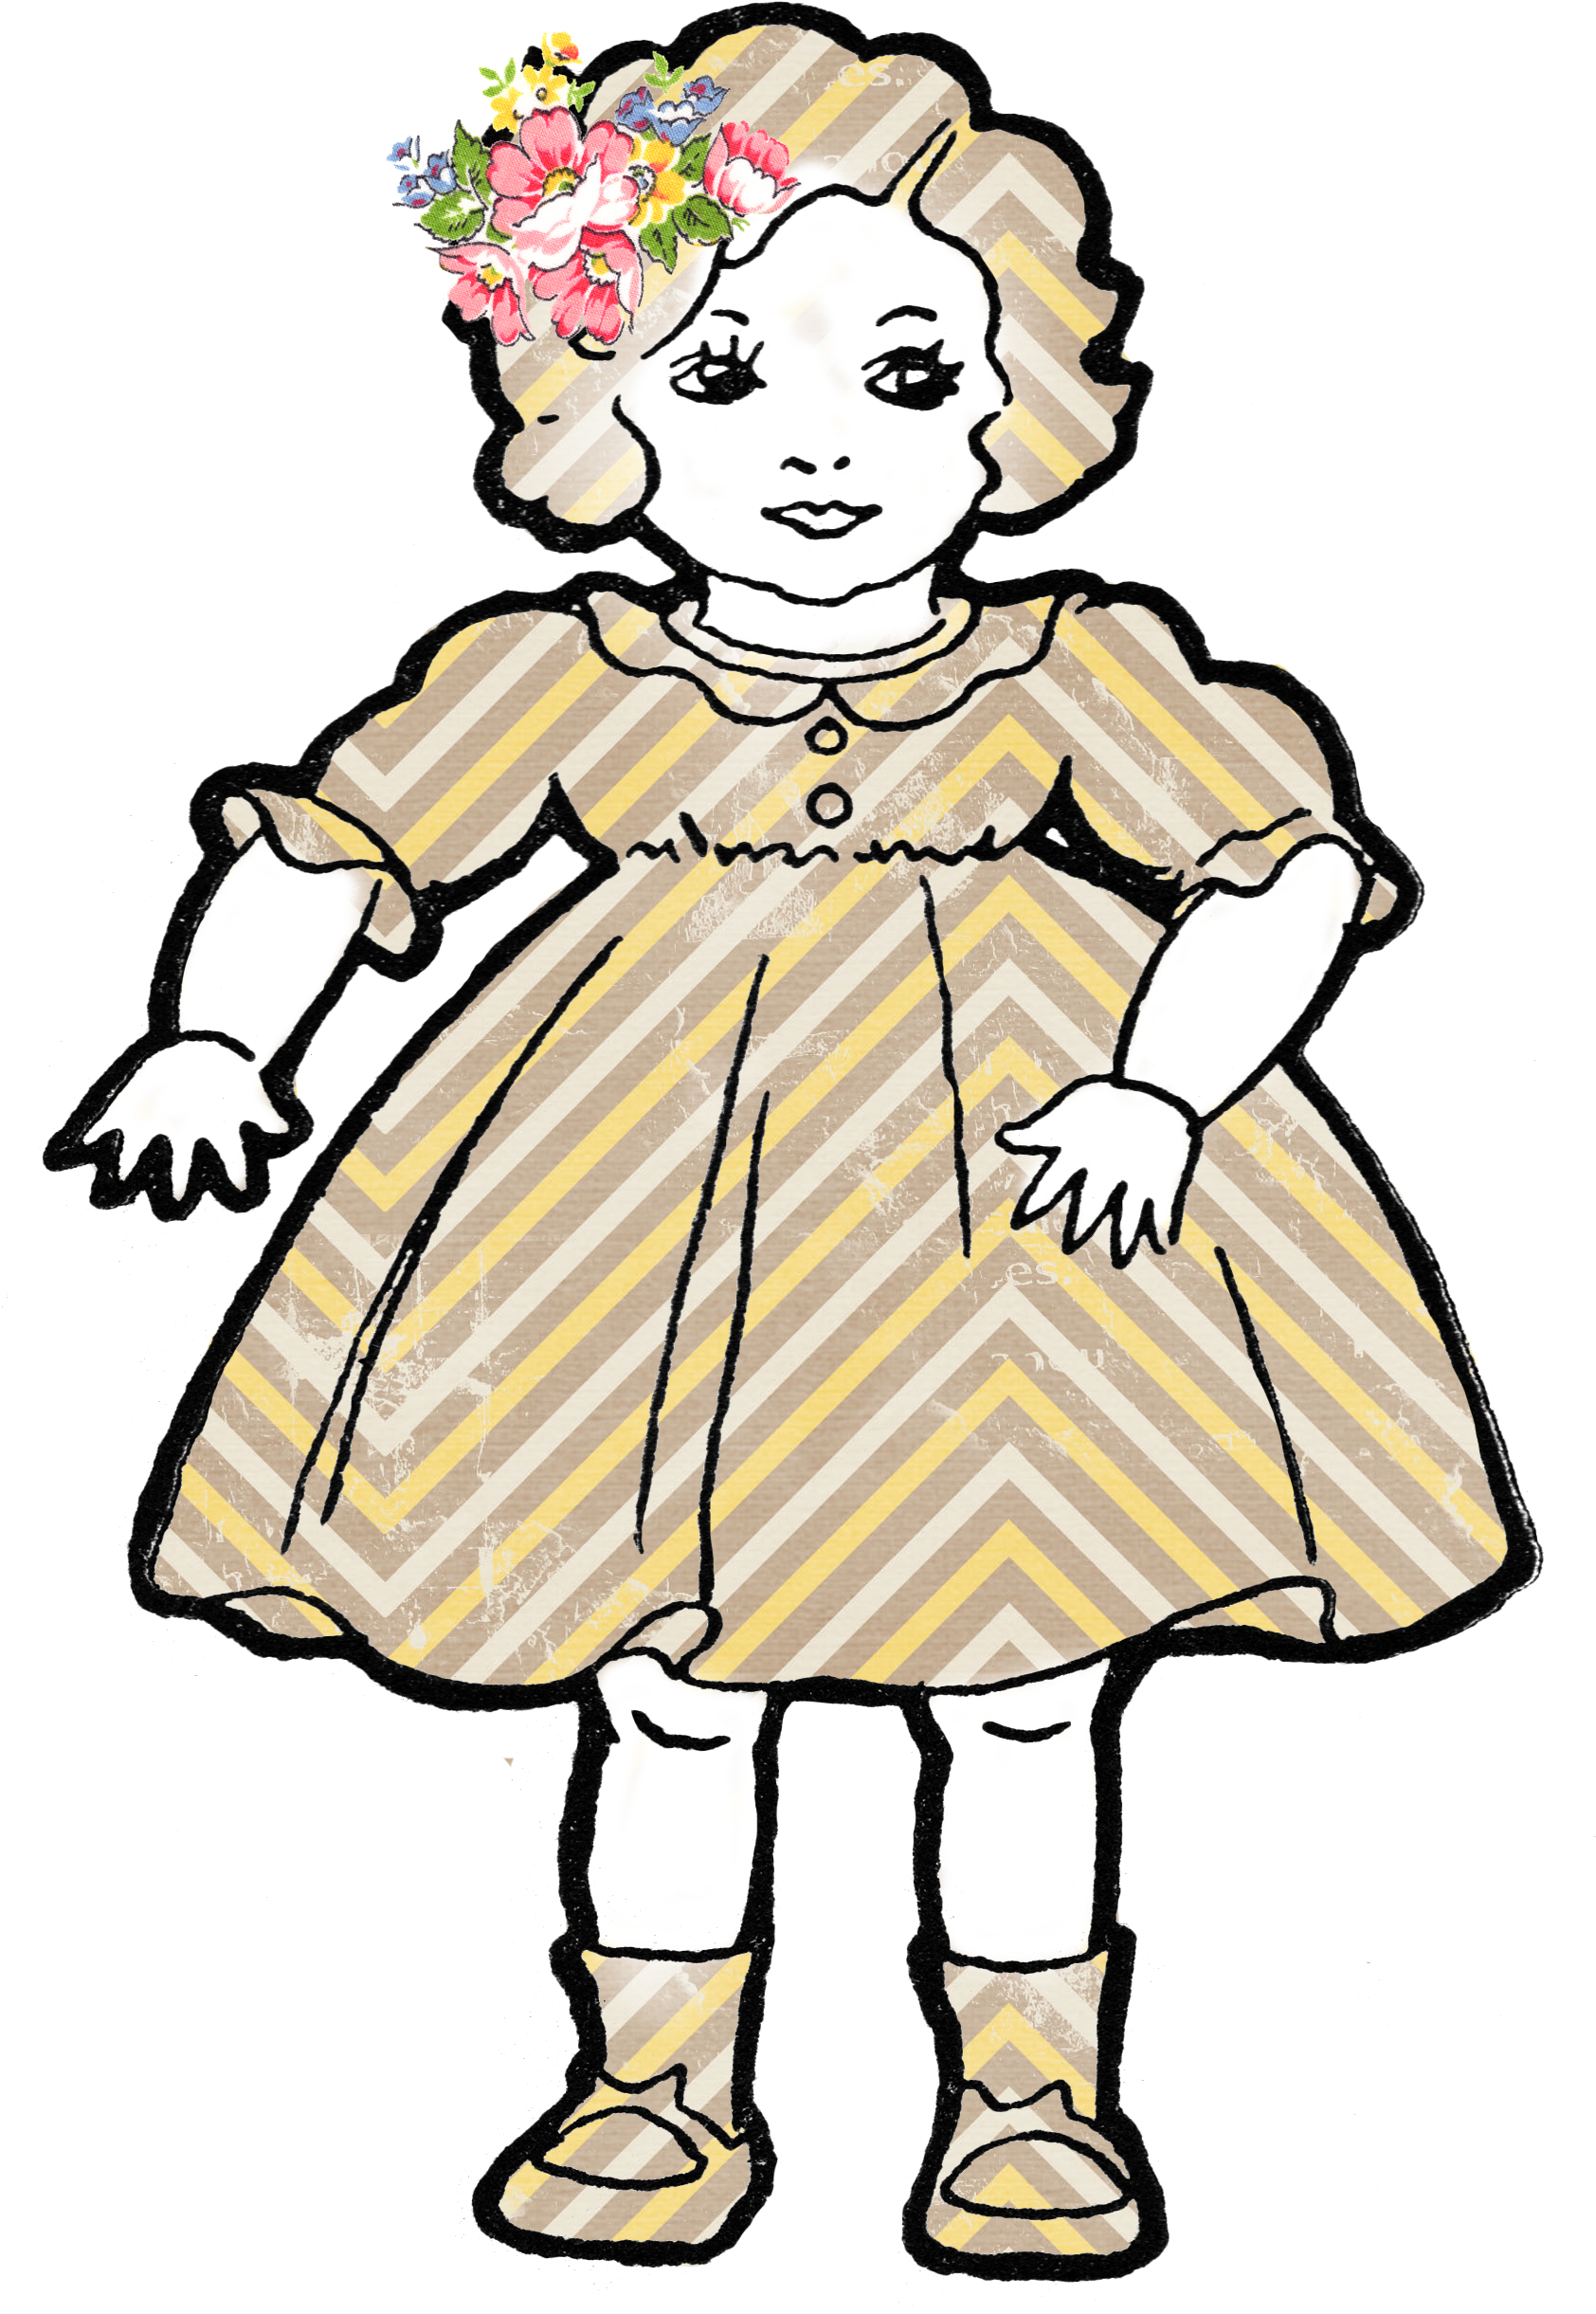 Baby Doll Clip Art - Clipart library